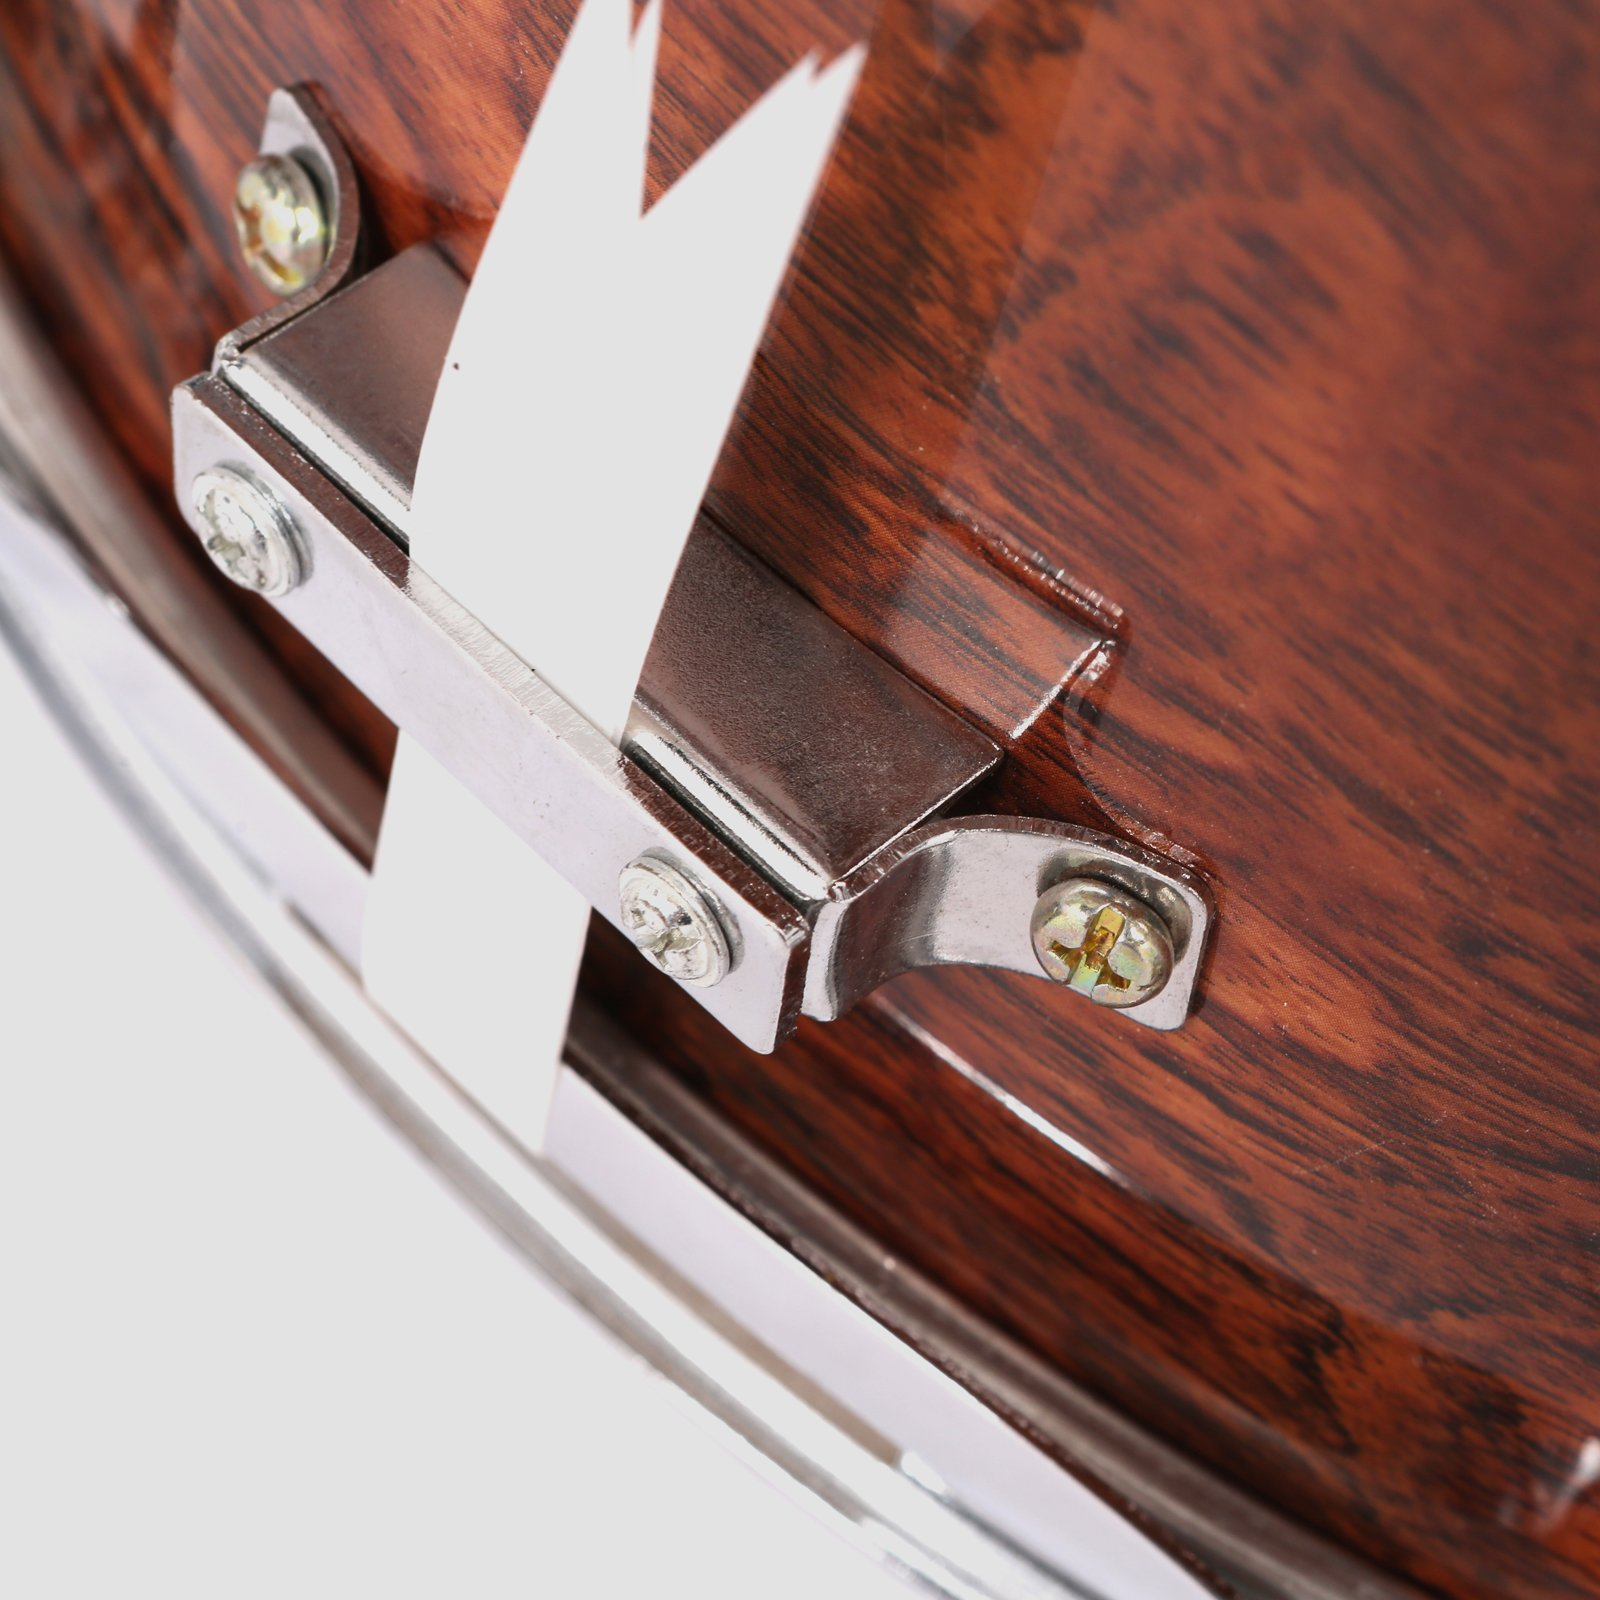 LAGRIMA Student Beginner Snare Drum W/Drum Key, Drumsticks and Strap|14x5.5 inch|Real Wood Shell|8 Metal Tuning Lugs by LAGRIMA (Image #9)